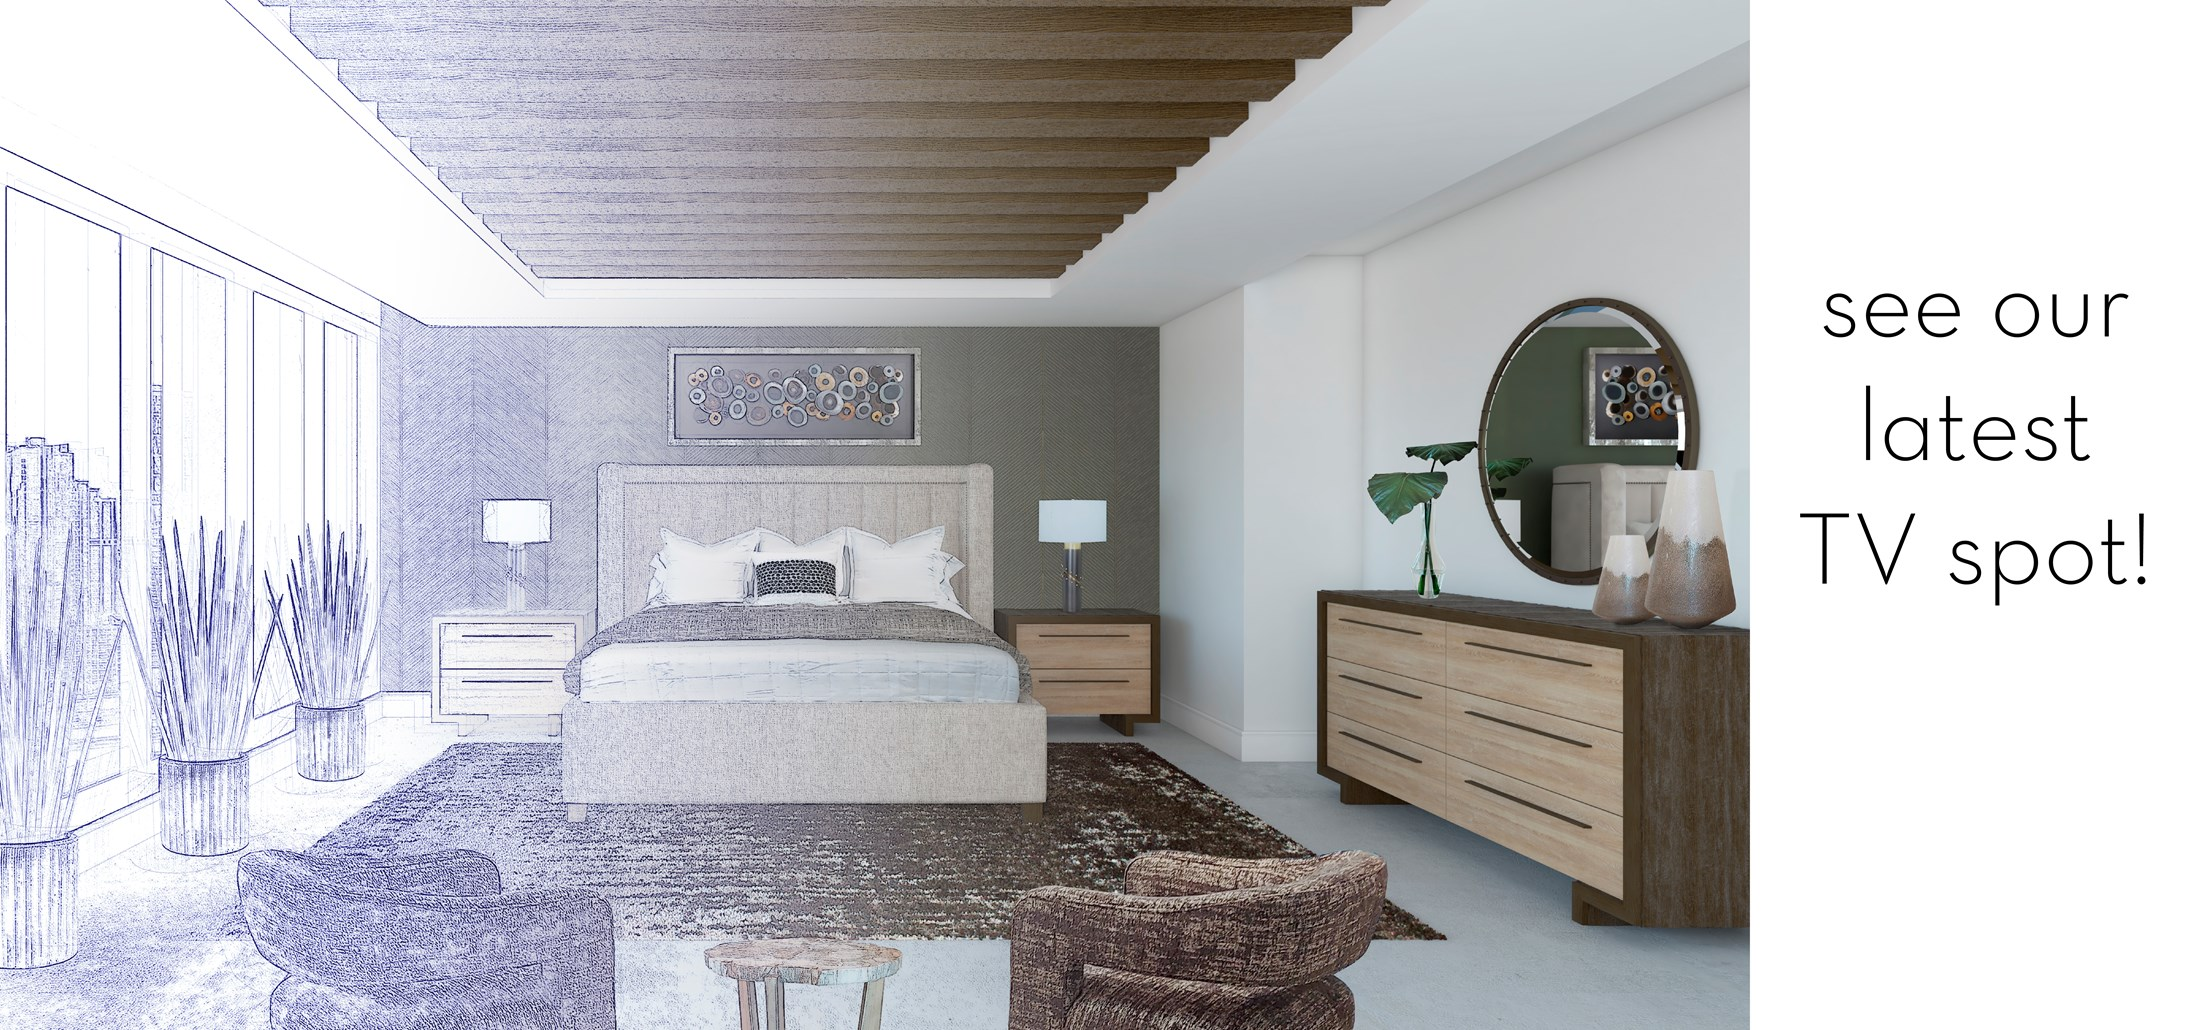 See our latest TV spot! Image of Instant Interiors Miranda Collection Bedroom turning from sketch into rendering image. Links to the Instant Interiors TV spot on Youtube.